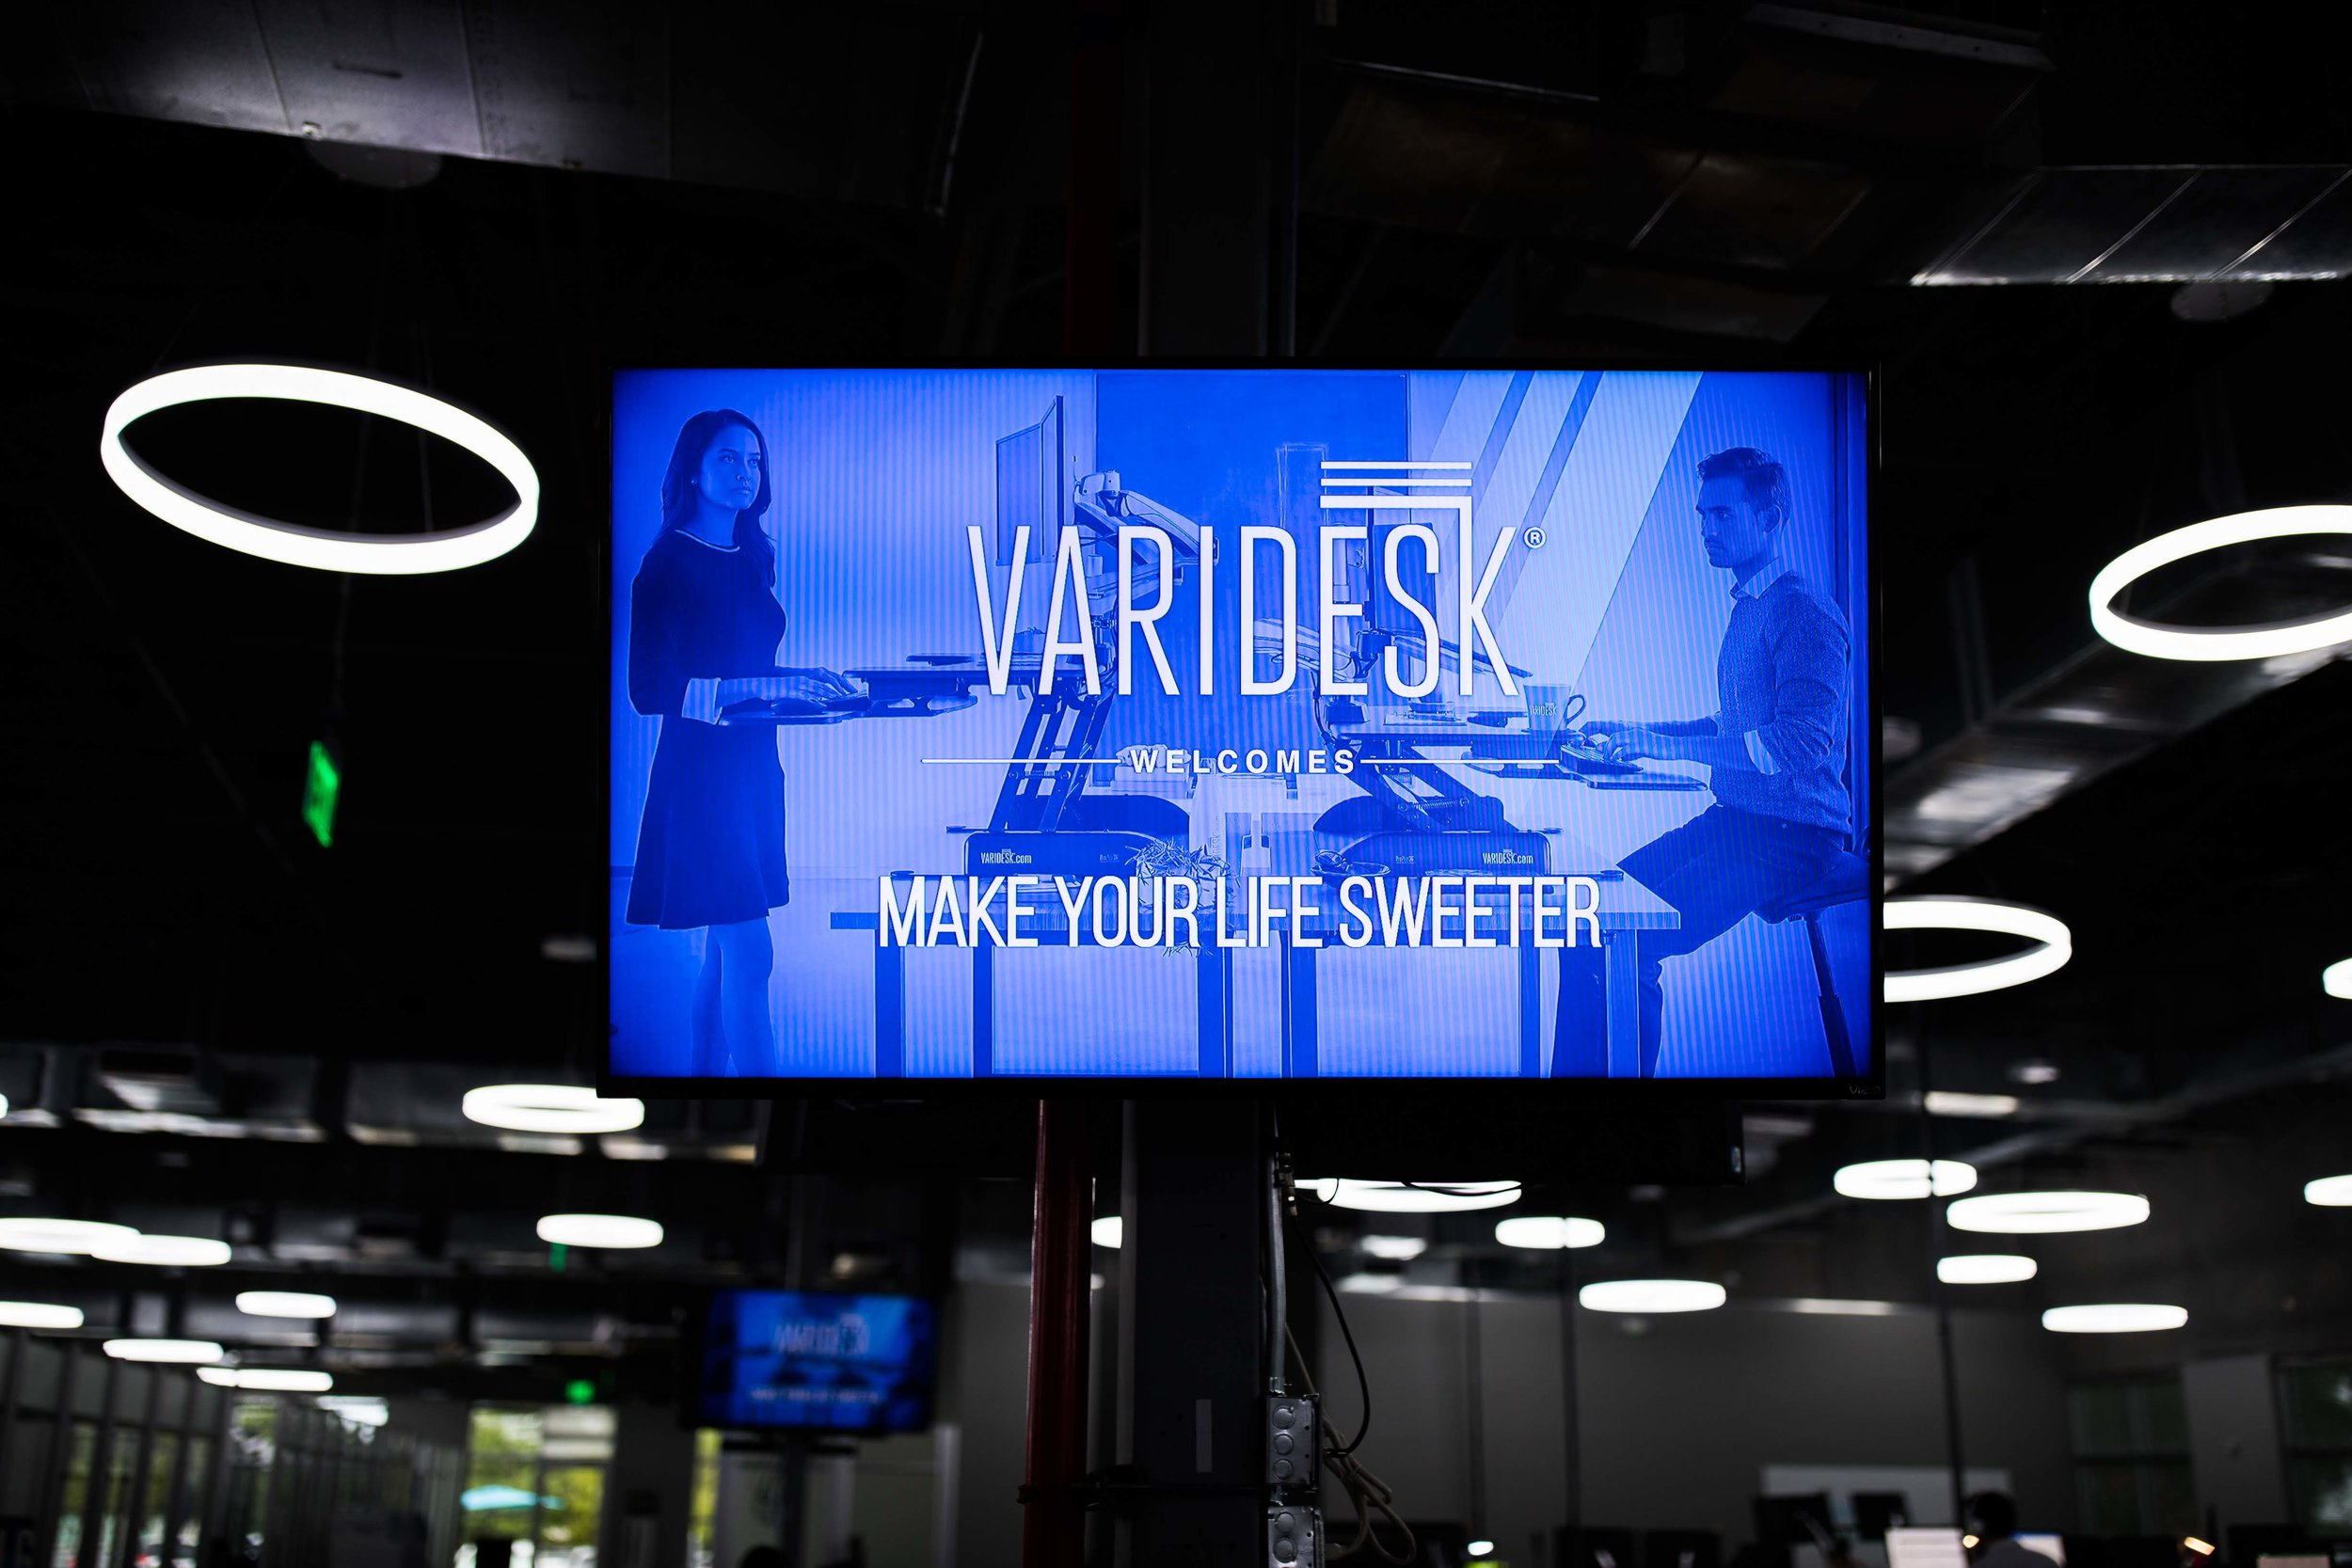 Make Your Life Sweeter Partnerships - Varidesk